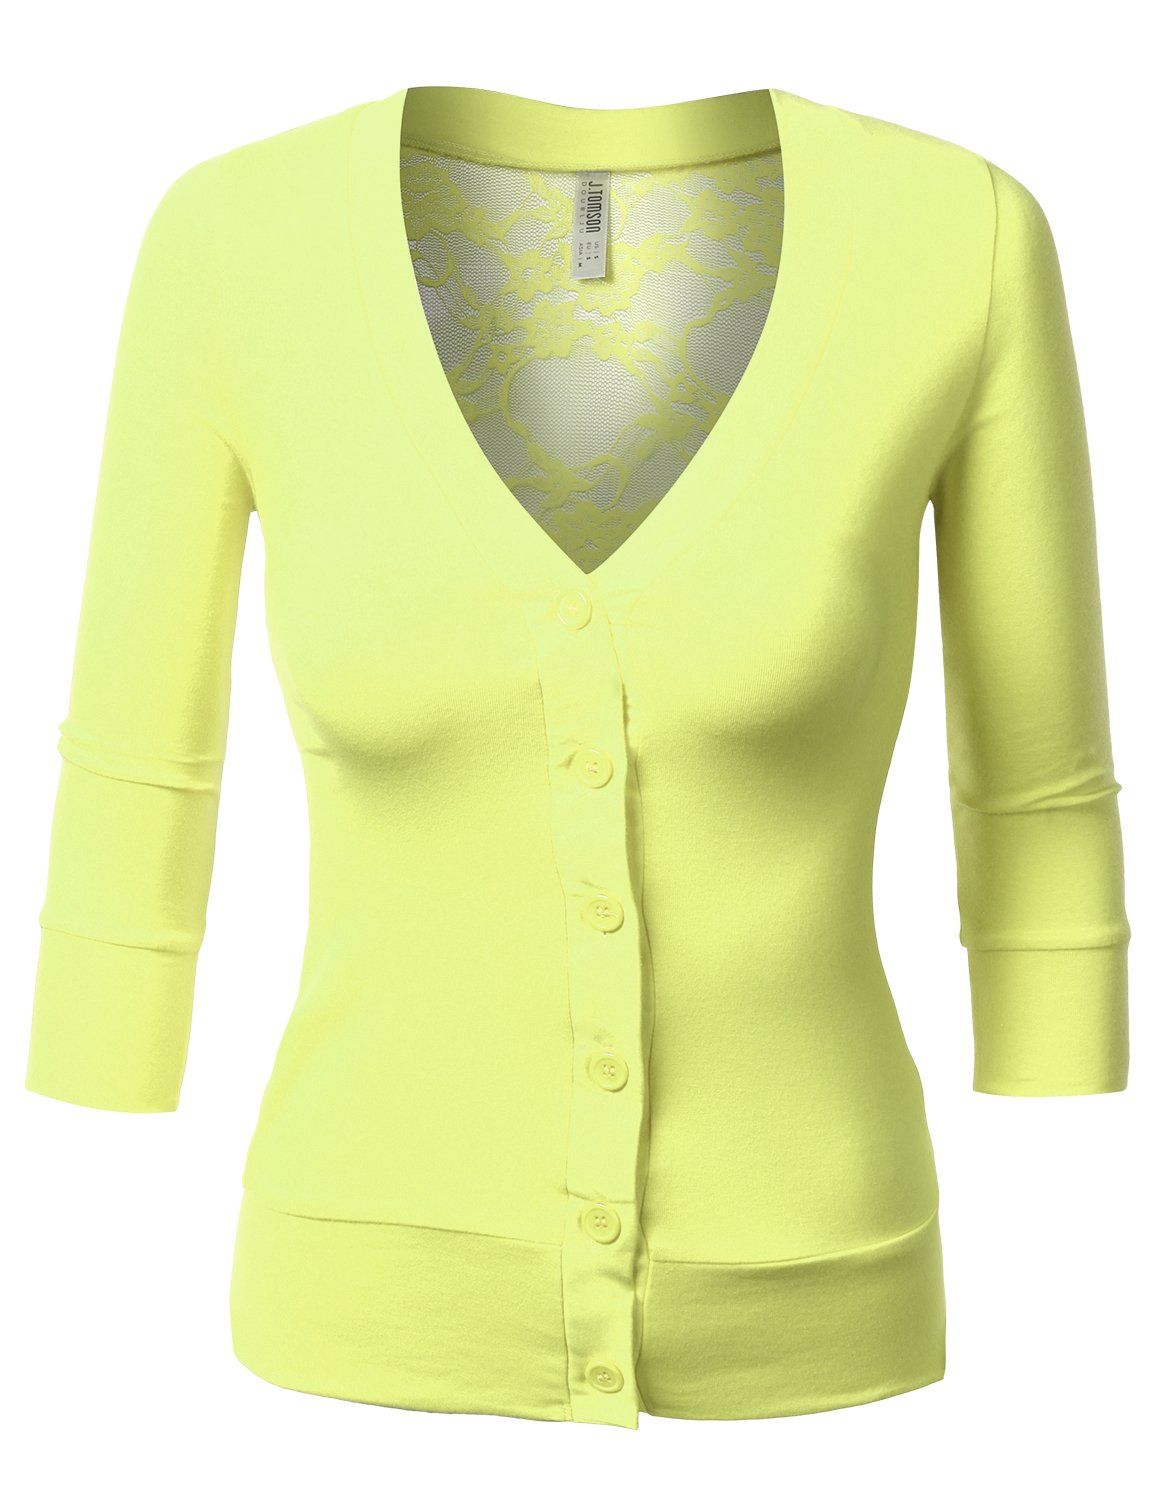 J.TOMSON Womens V-Neck Button Down Cardigan at Amazon Women's ...